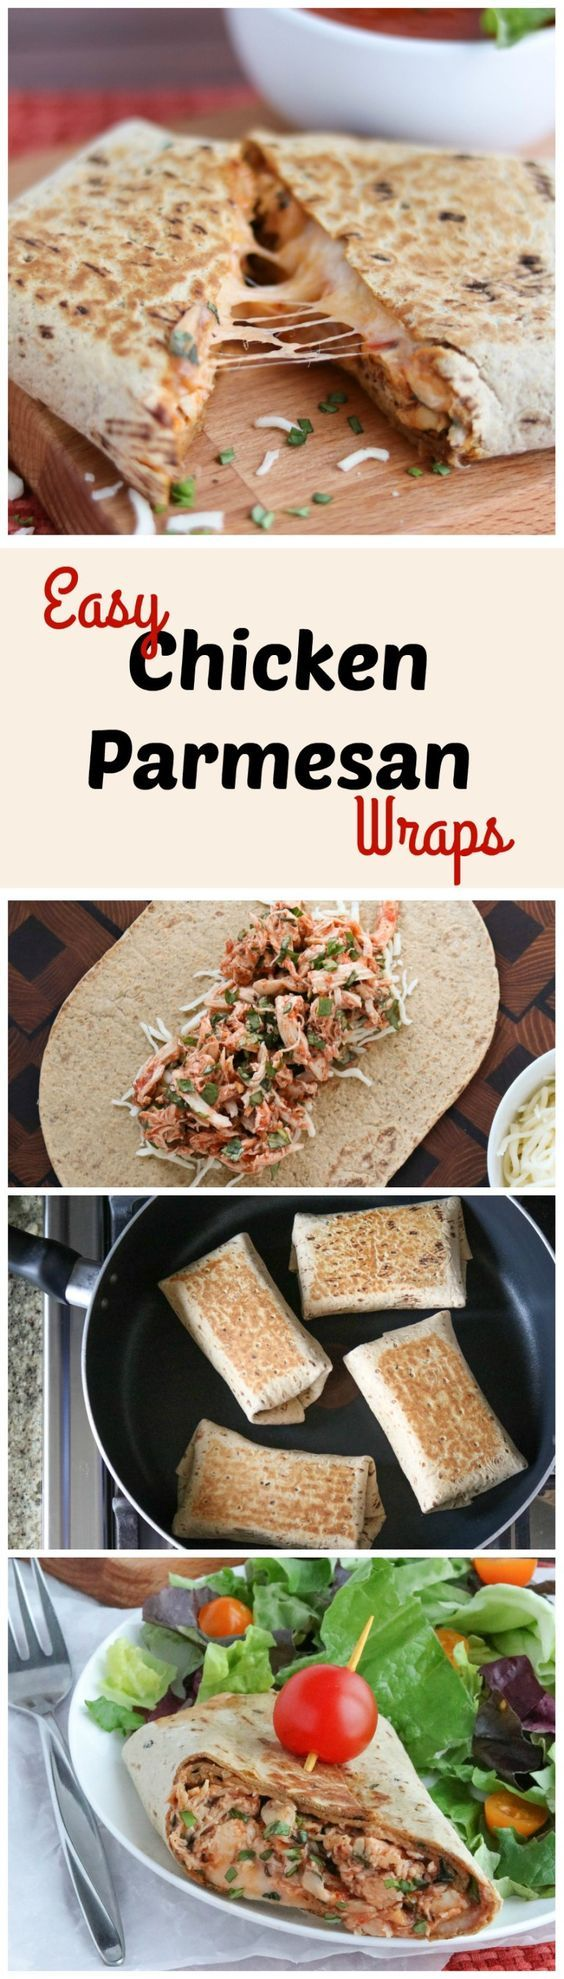 These Easy Chicken Parmesan Wraps are a fast 15-minute meal! You can even make them ahead – they're freezable, too! Cheesy, saucy and so delicious! AD   www.TwoHealthyKitchens.com